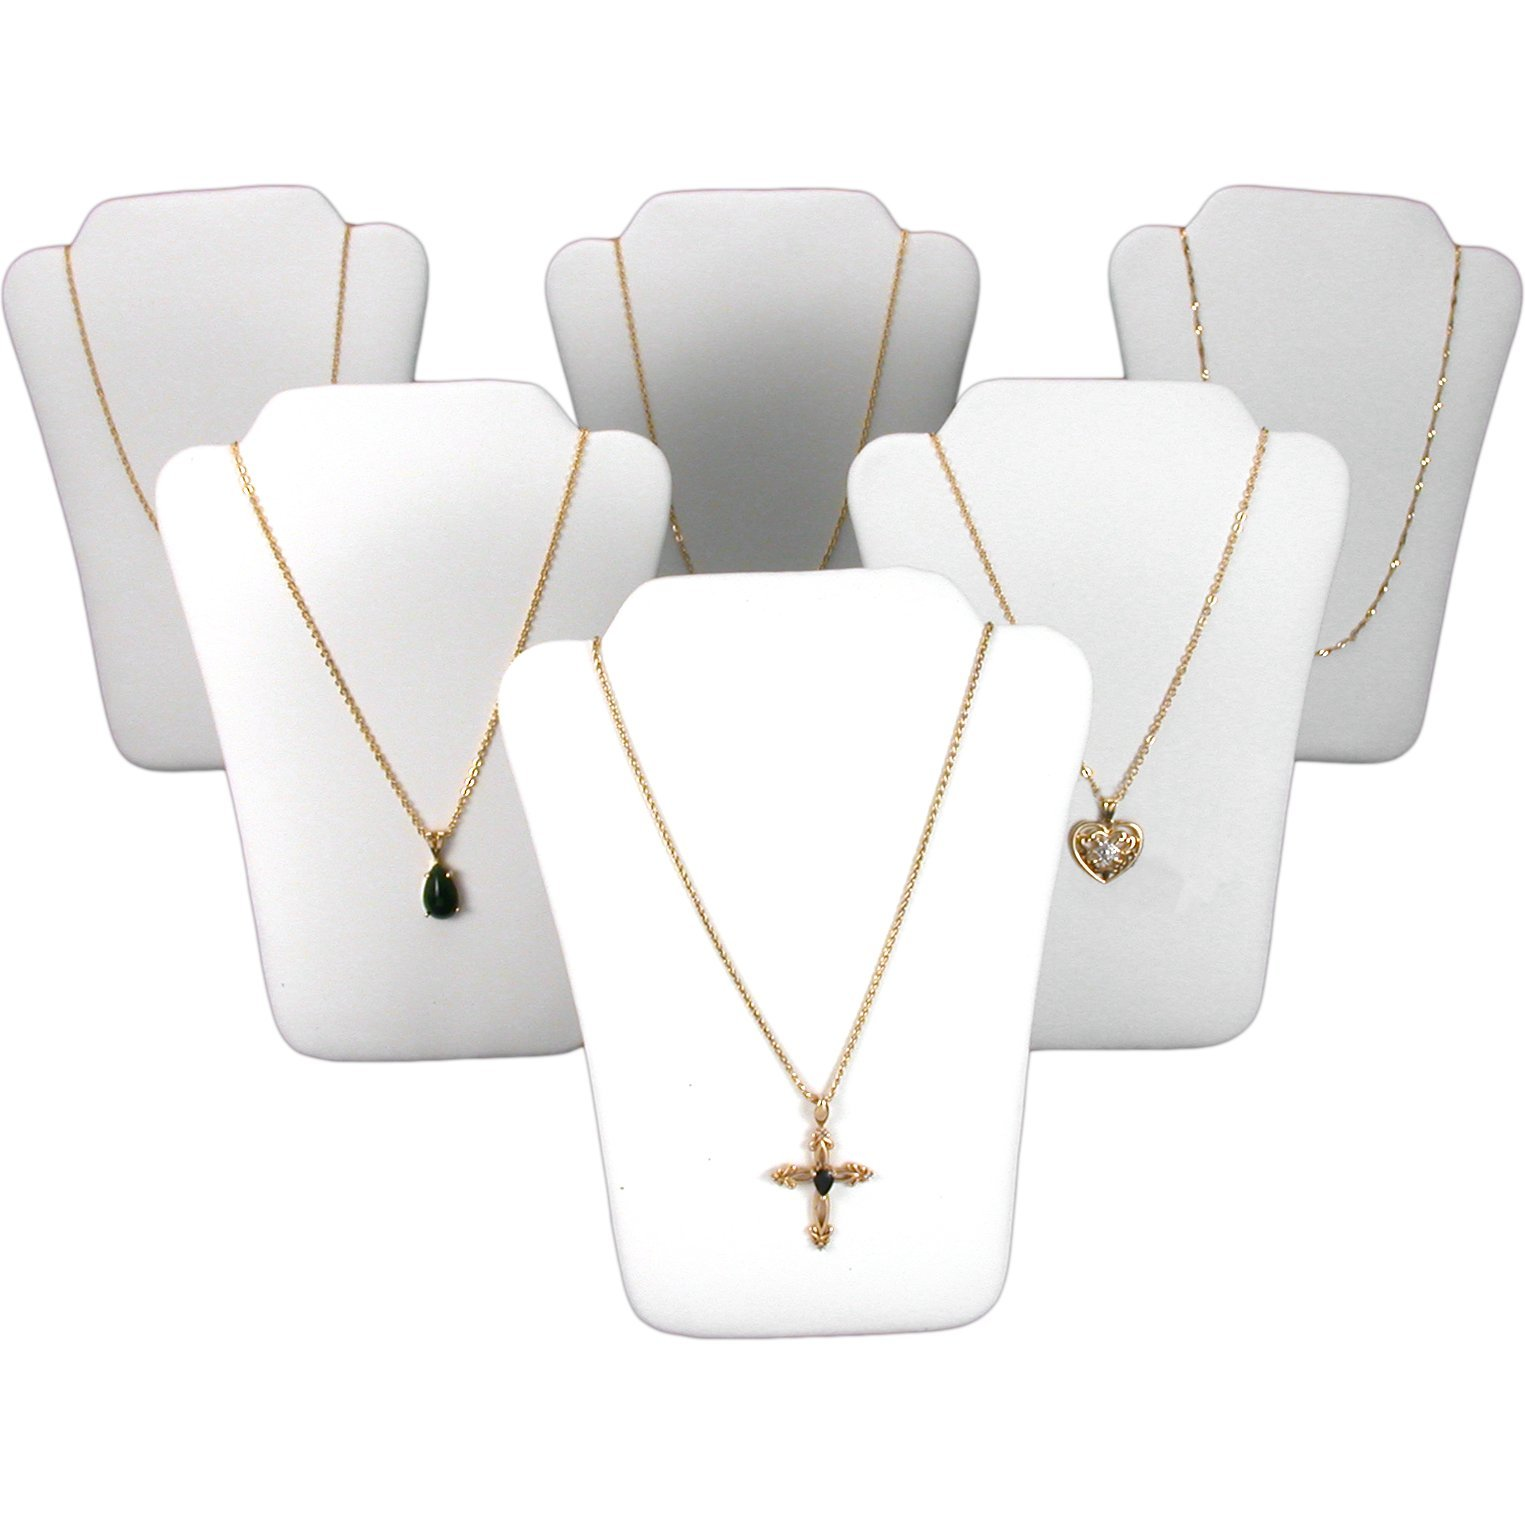 FindingKing 6 White Leather Chain Necklace Easel Jewelry Displays